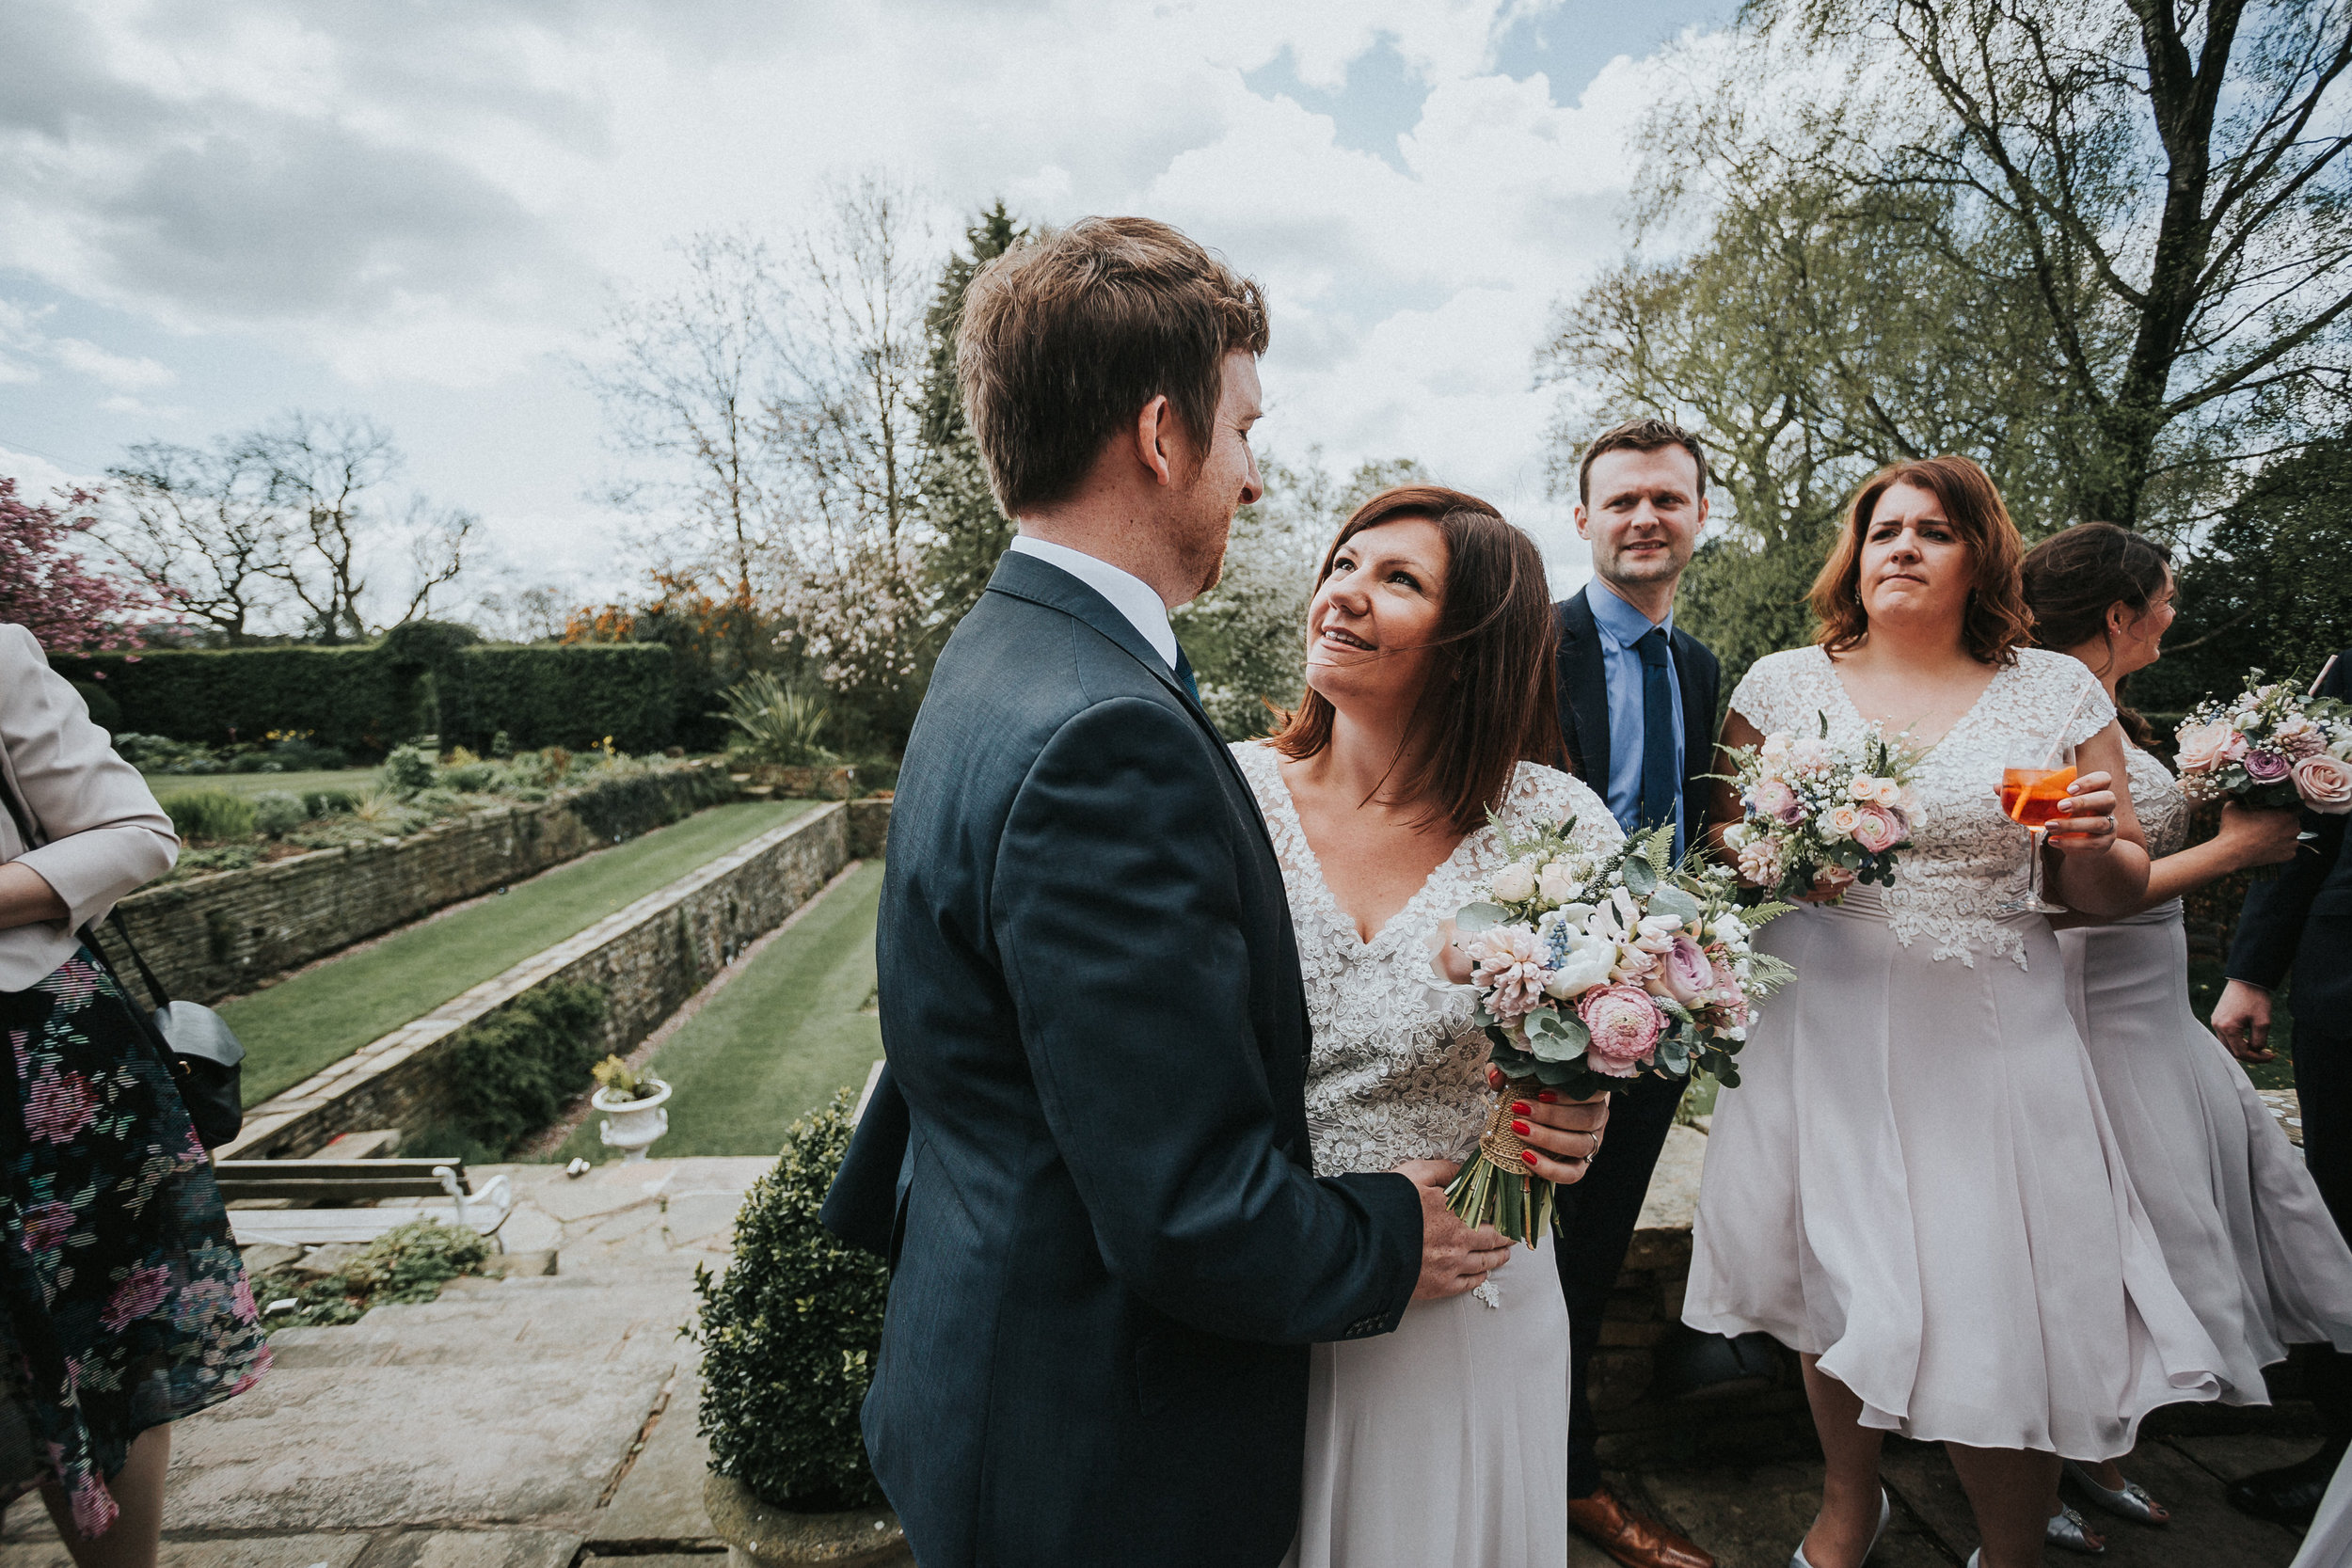 Hilltop Country House Wedding Photography - 51.jpg